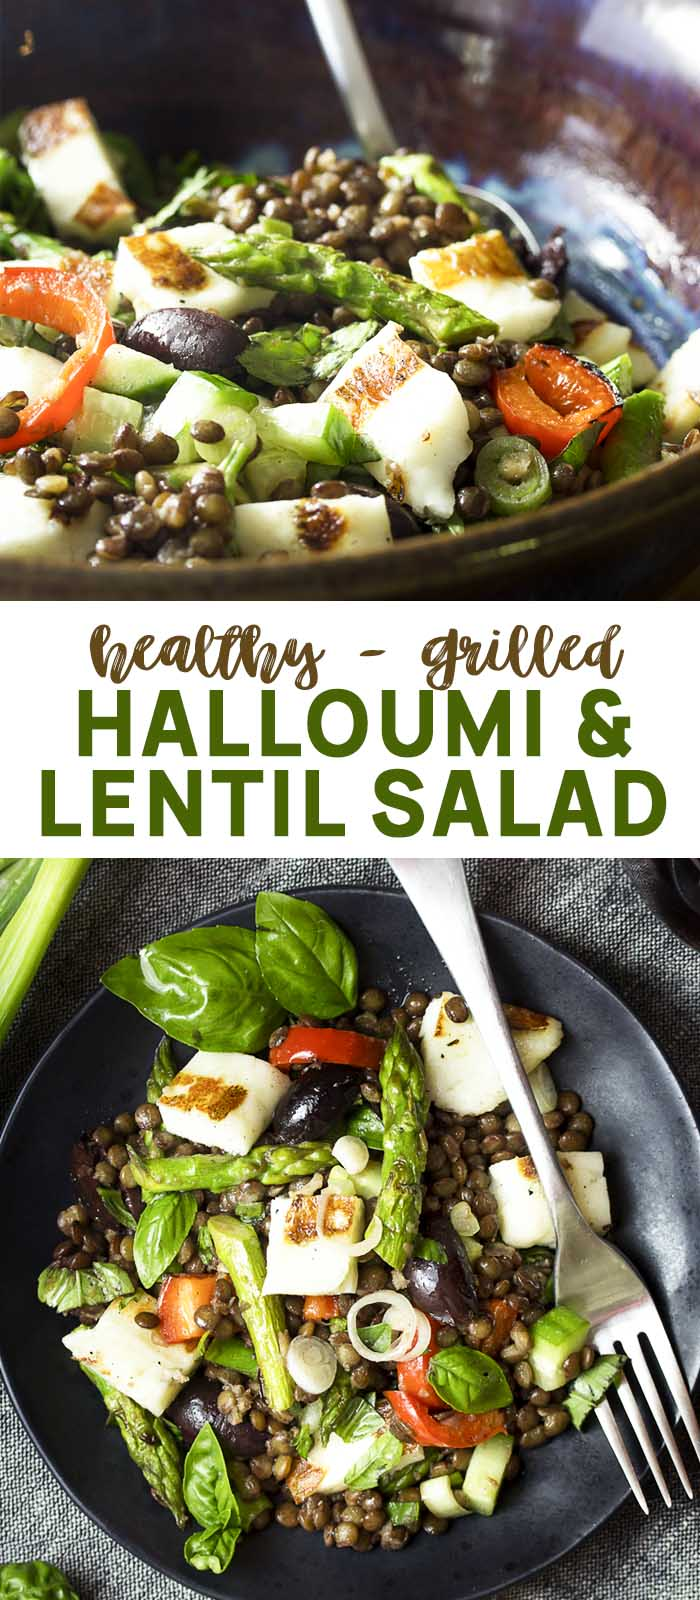 Halloumi lentil salad in a bowl and plate with text overlay - Halloumi Lentil Salad.